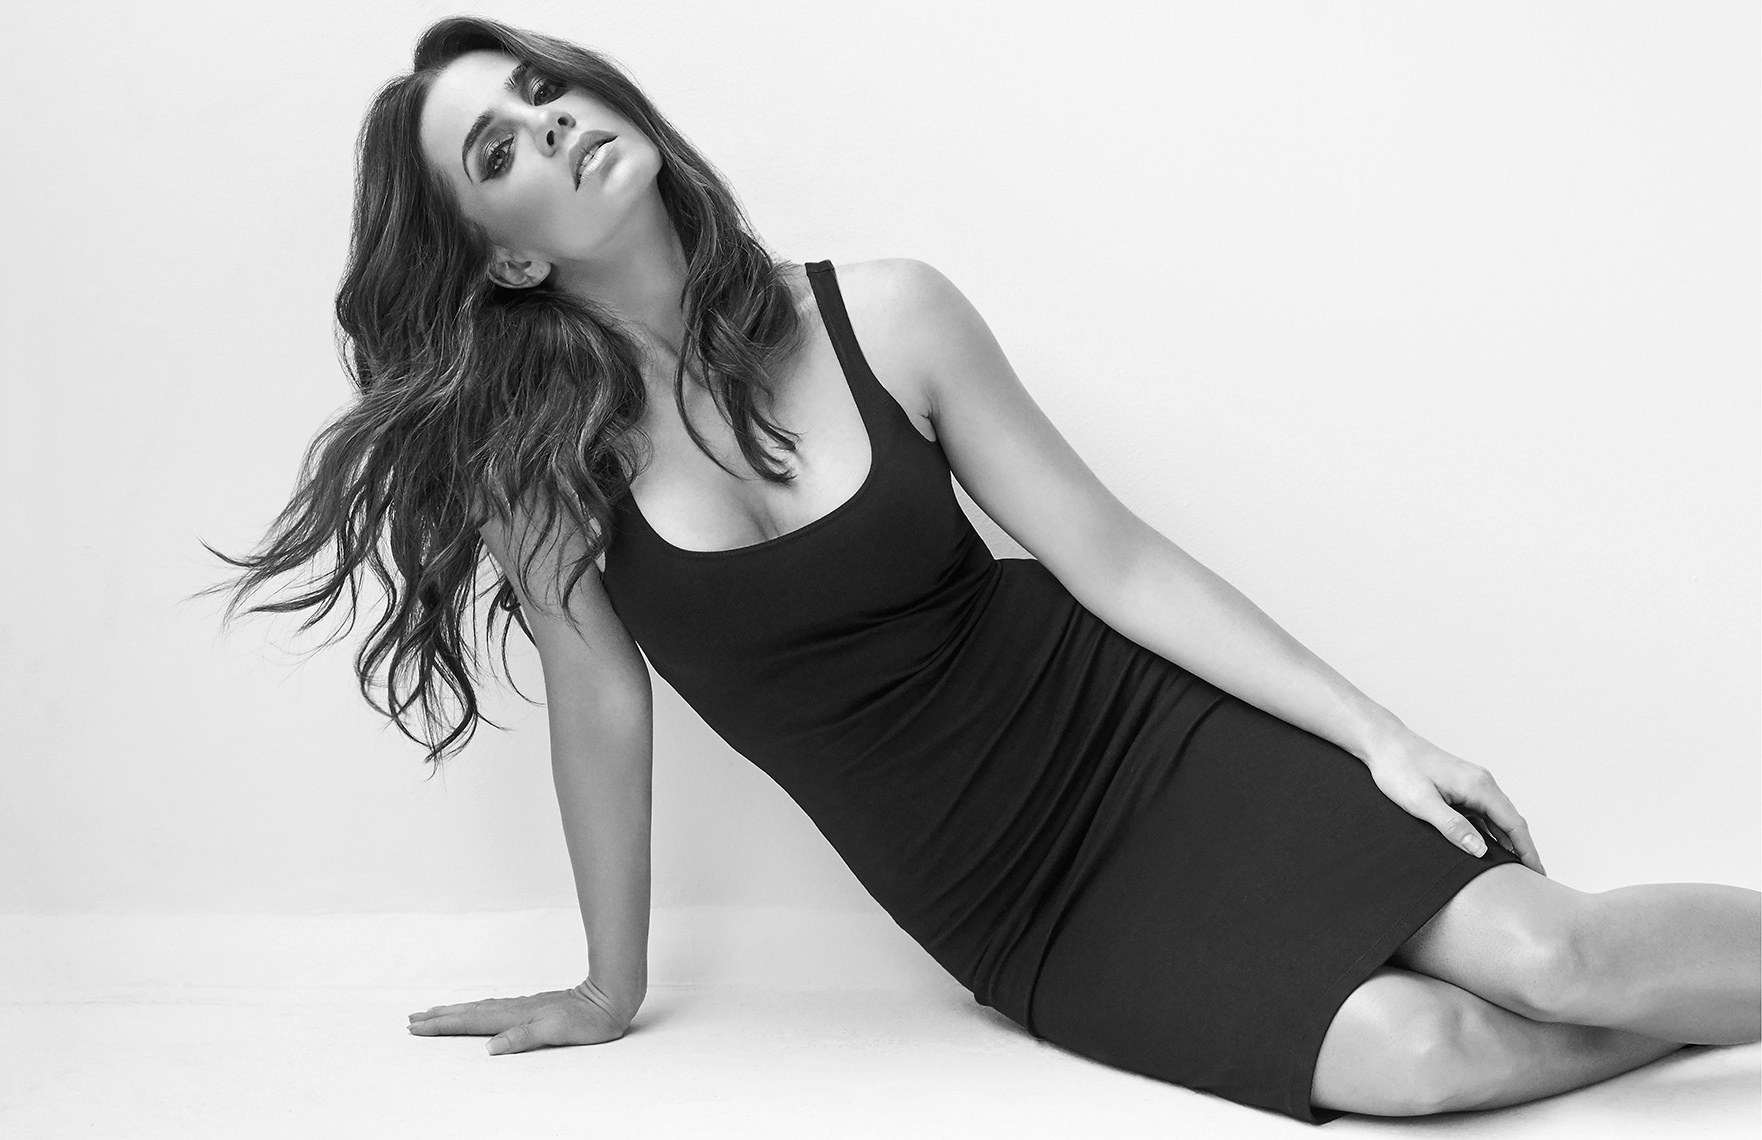 jillian_murray_DSC03555_web-bw